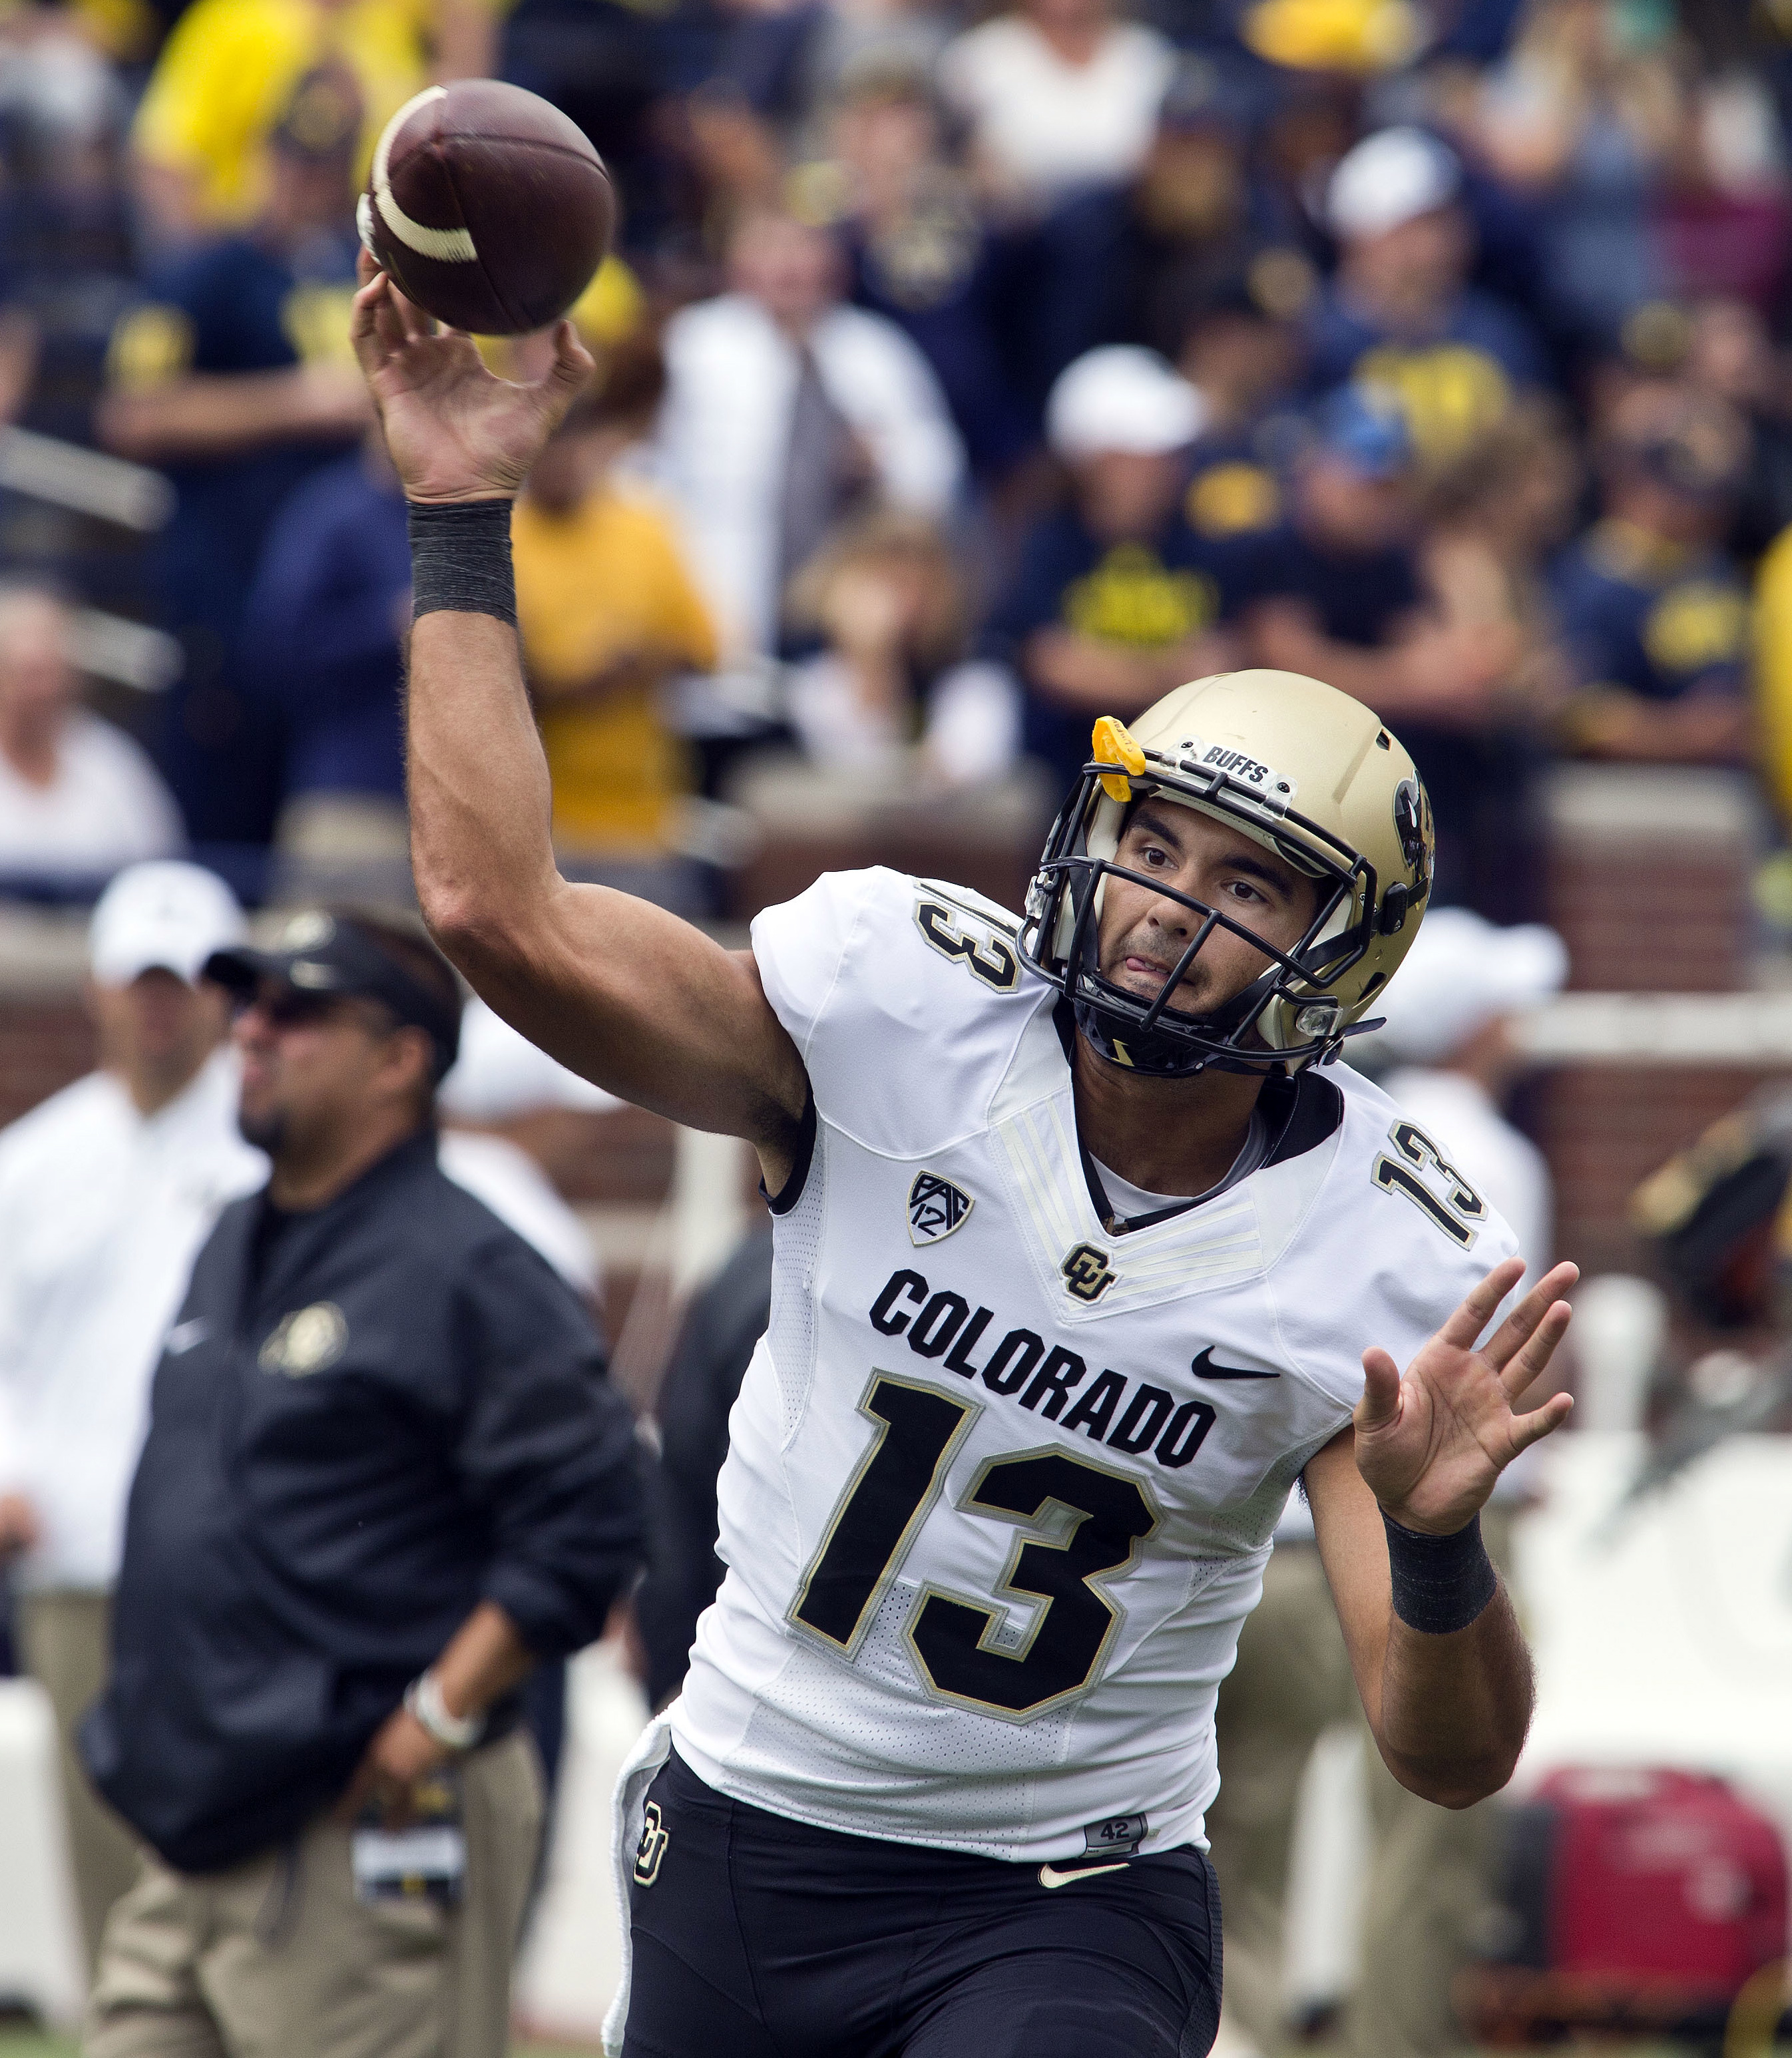 FILE - In this Sept. 17, 2016, file photo, Colorado quarterback Sefo Liufau warmups before an NCAA college football game against Michigan at Michigan Stadium in Ann Arbor, Mich. Oregon hosts Colorado on Saturday.  (AP Photo/Tony Ding, File)